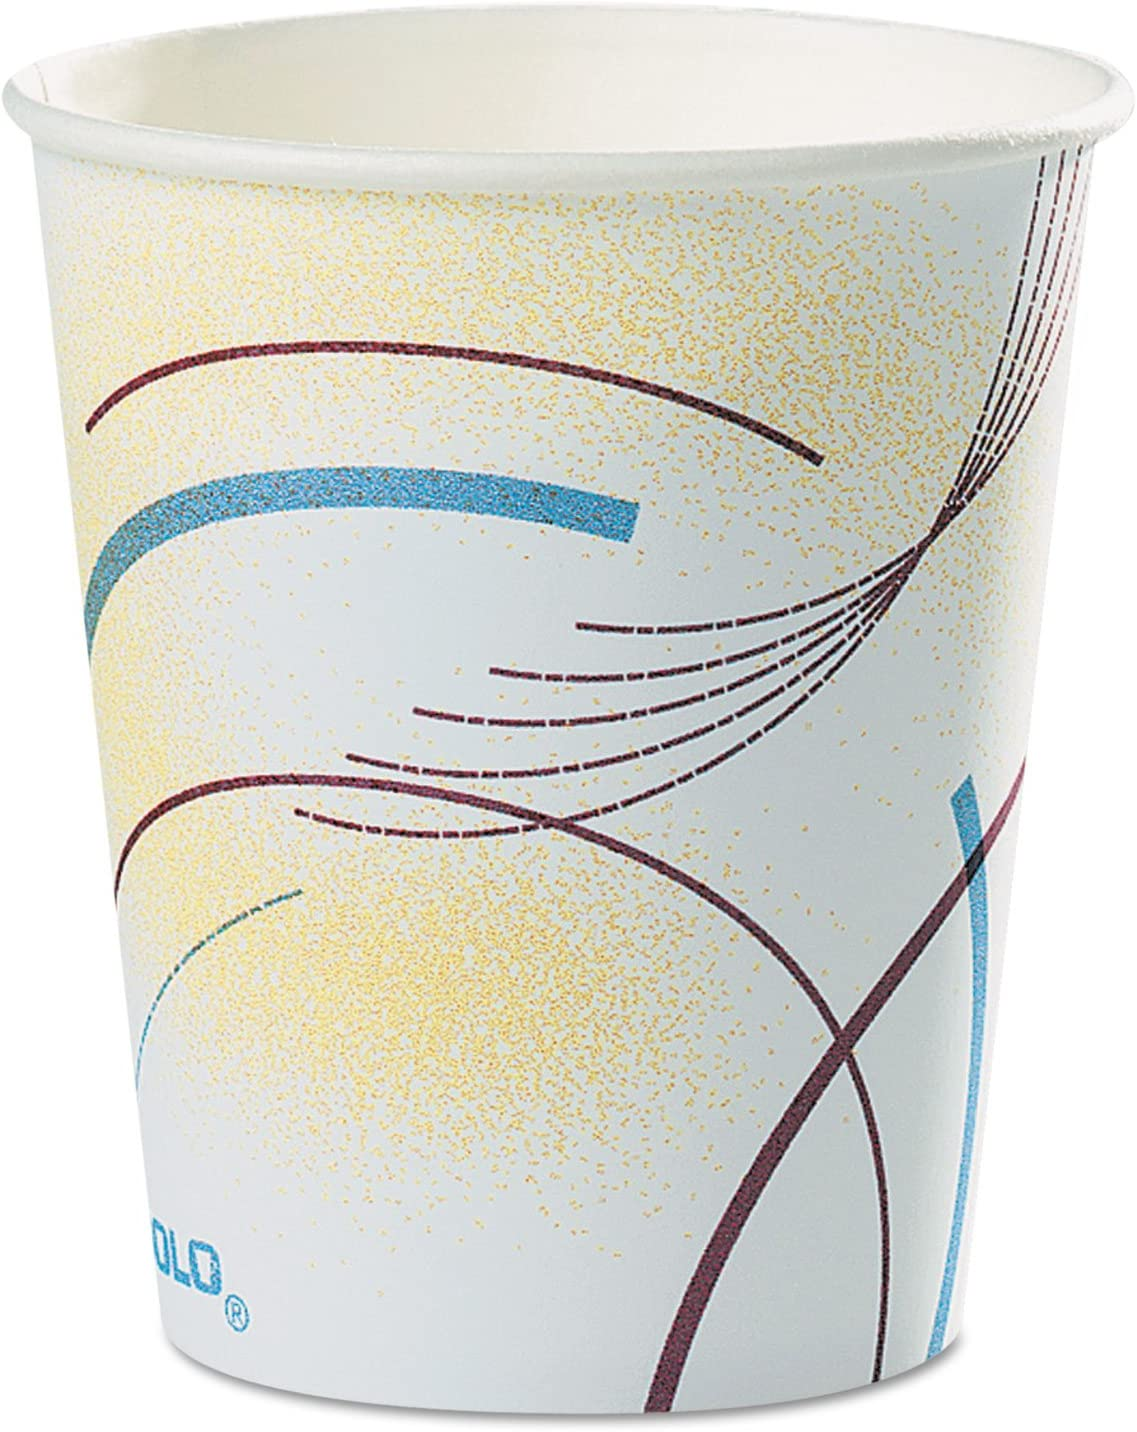 Paper Water Cups unisex 5 oz Meridian Cold Special Campaign Multicolored 100 Design